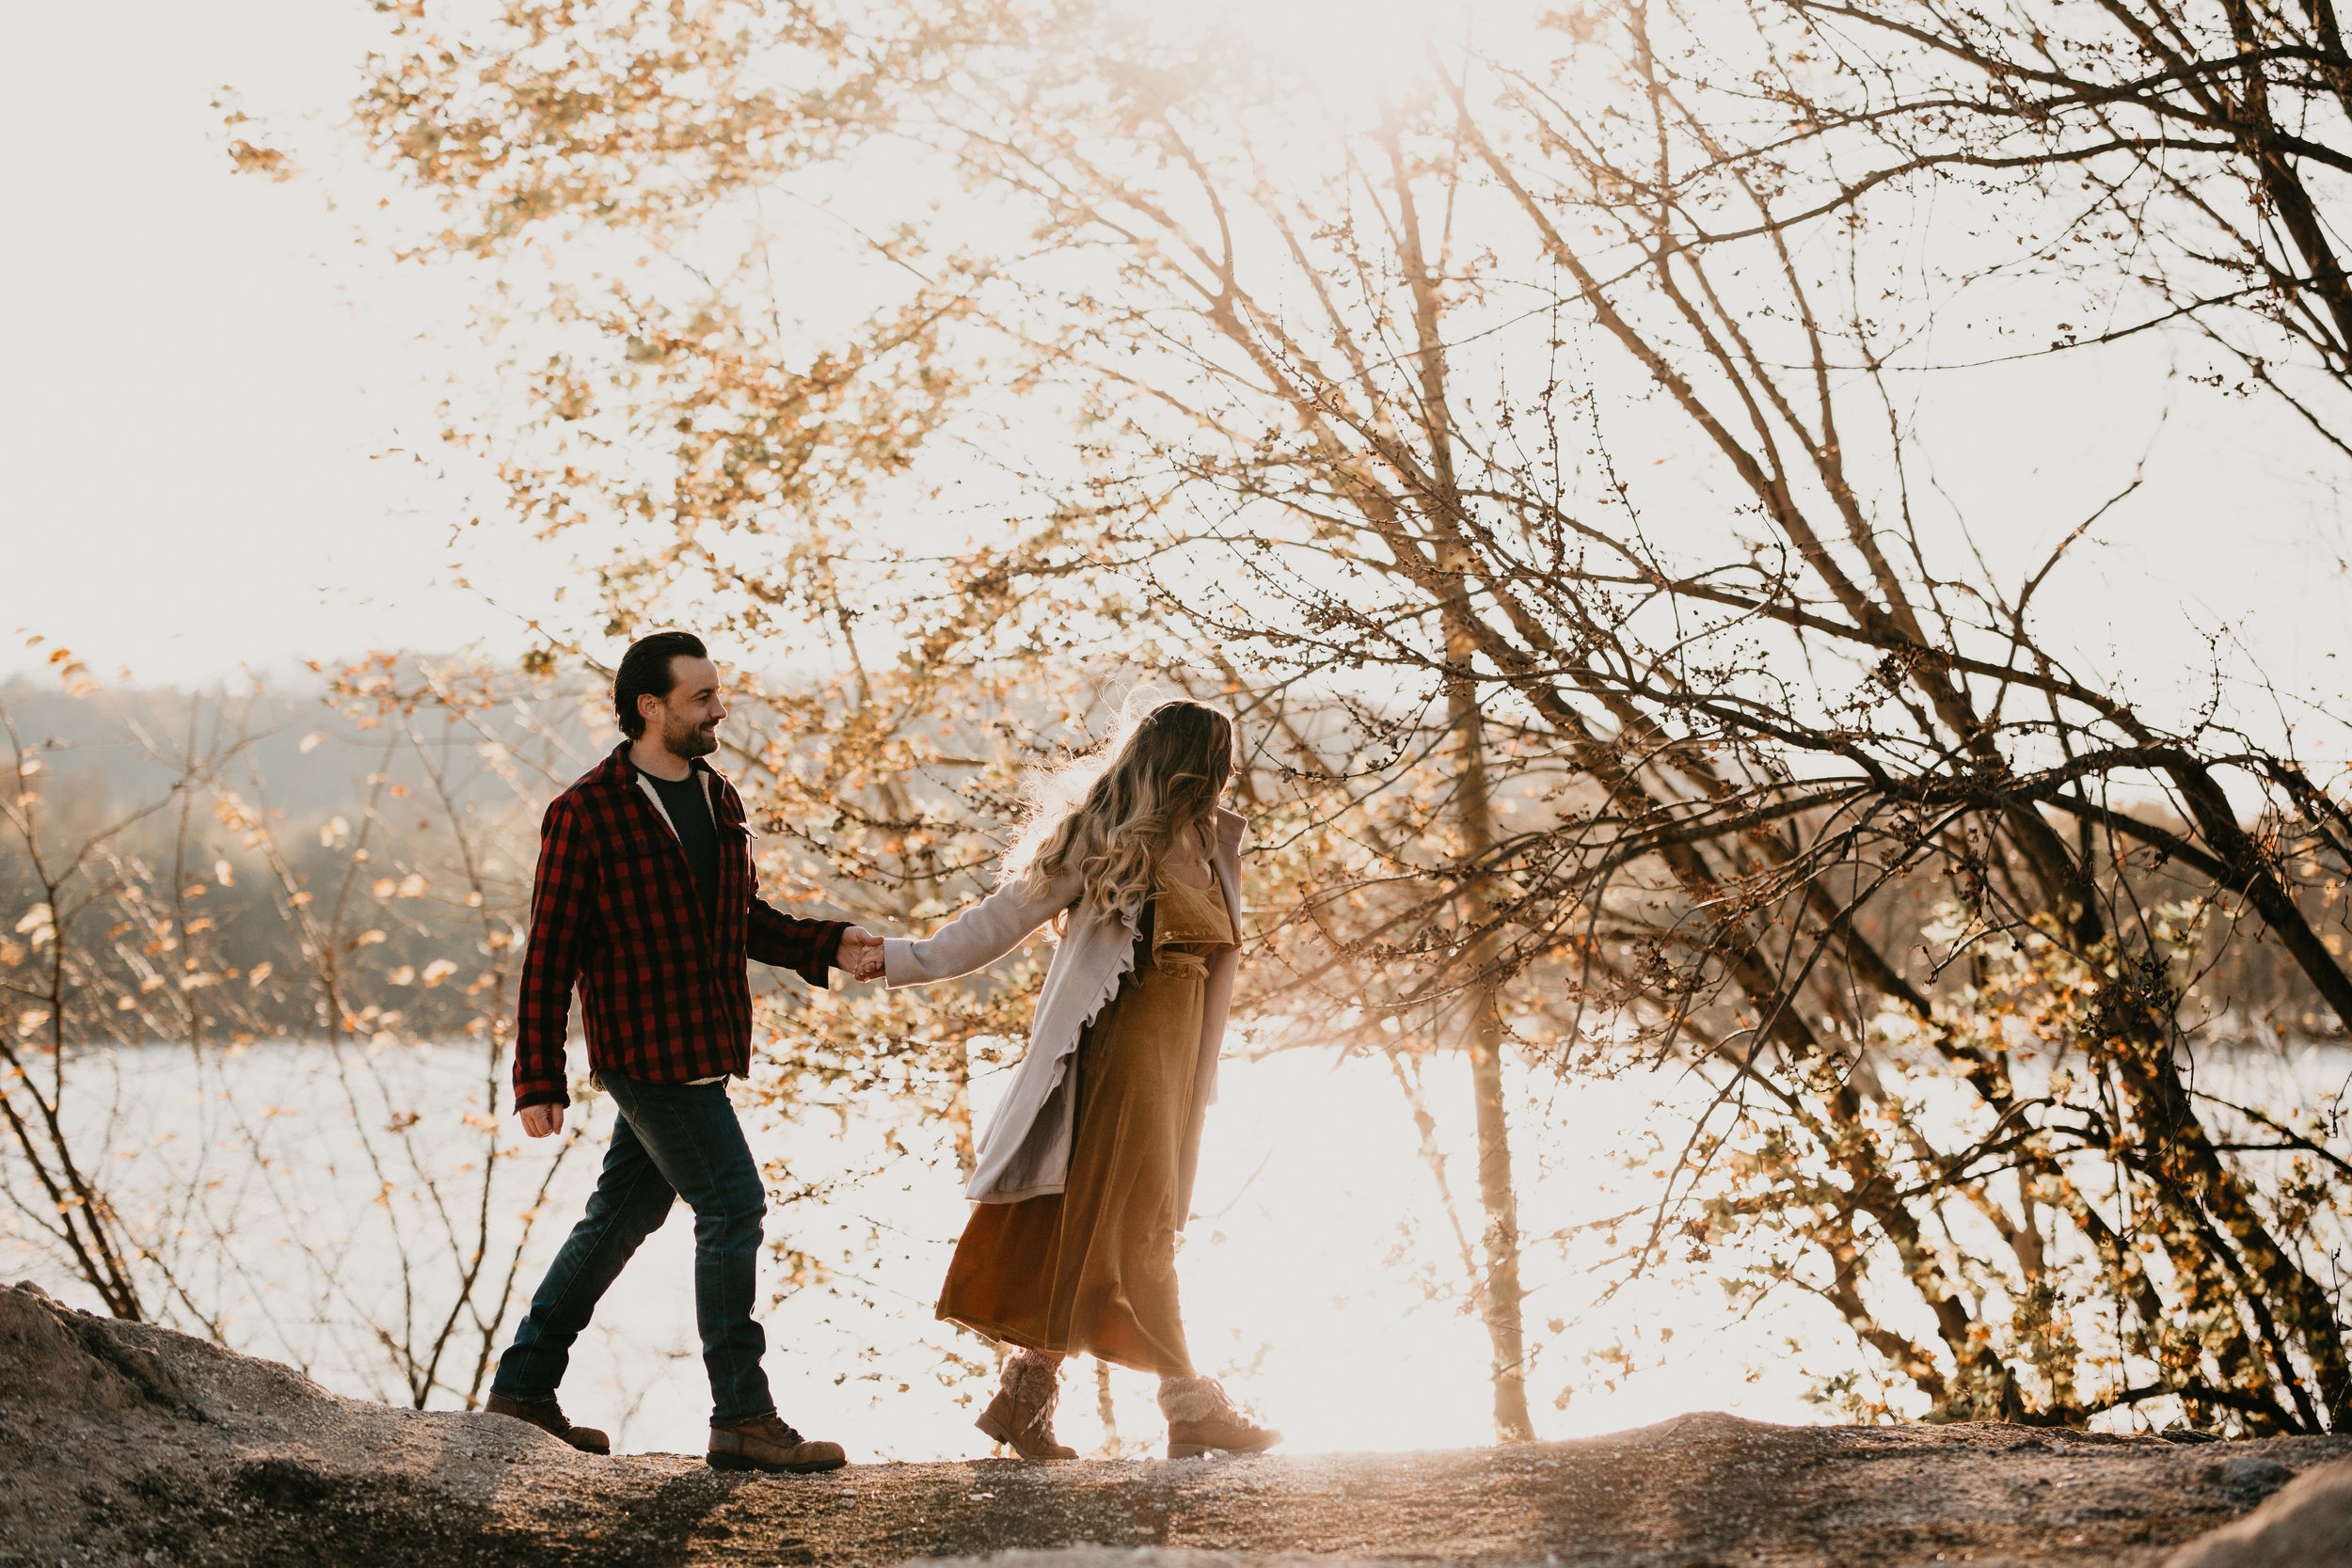 nicole-daacke-photography-white-cliffs-of-conoy-in-lancaster-pa-pennsylvania-adventure-session-adventure-elopement-photographer-engagement session-in-lancaster-pa-photographer-golden-sunset-winter-solstice-wedding-riverside-elopement-4841.jpg